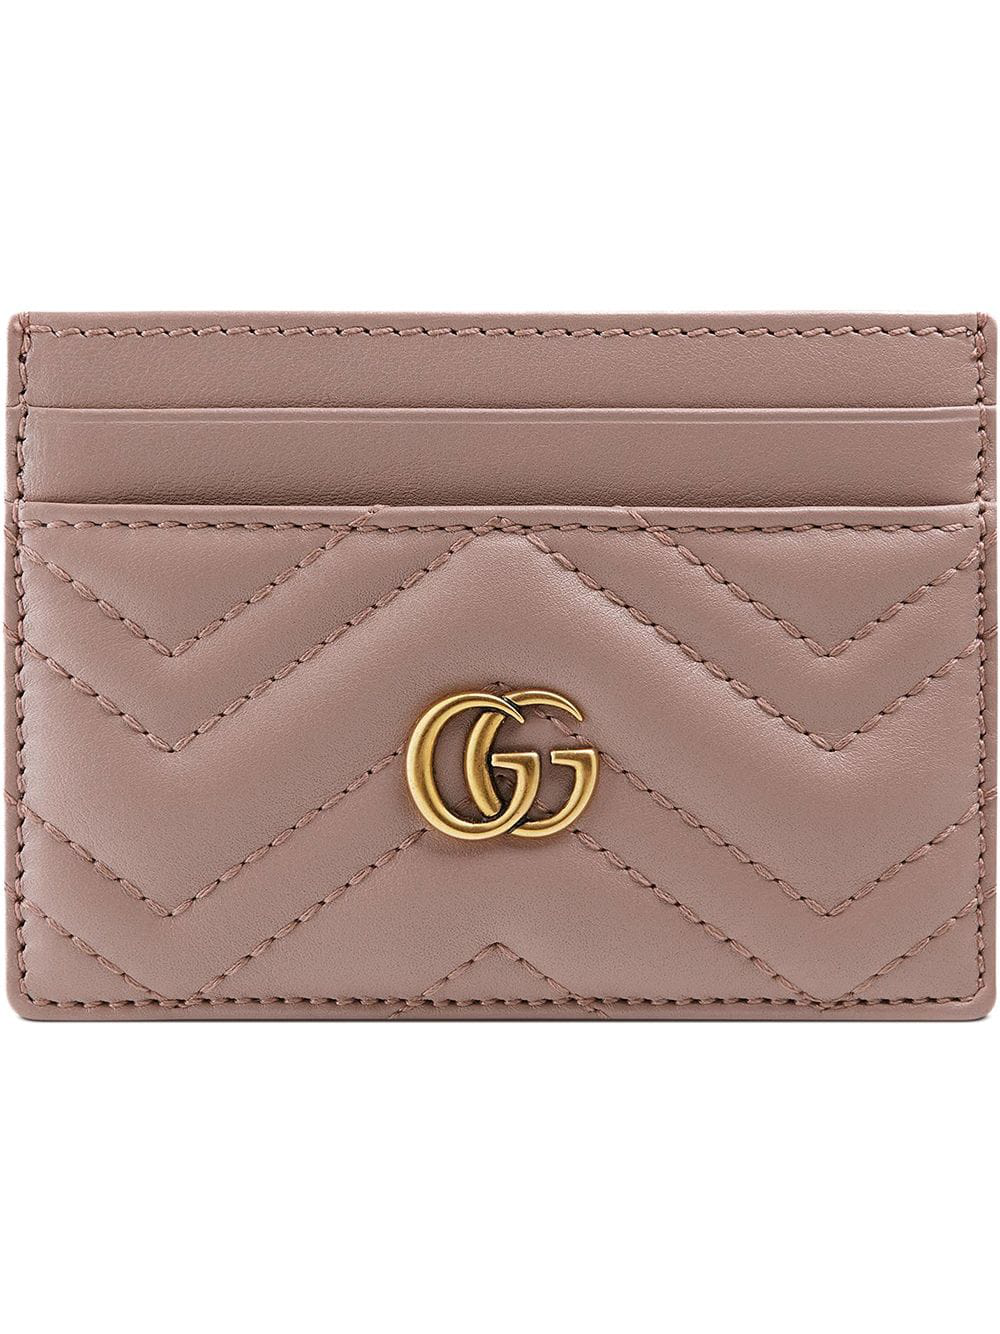 bb01fe72324ff5 Gucci Gg Marmont Card Case - Pink | ModeSens